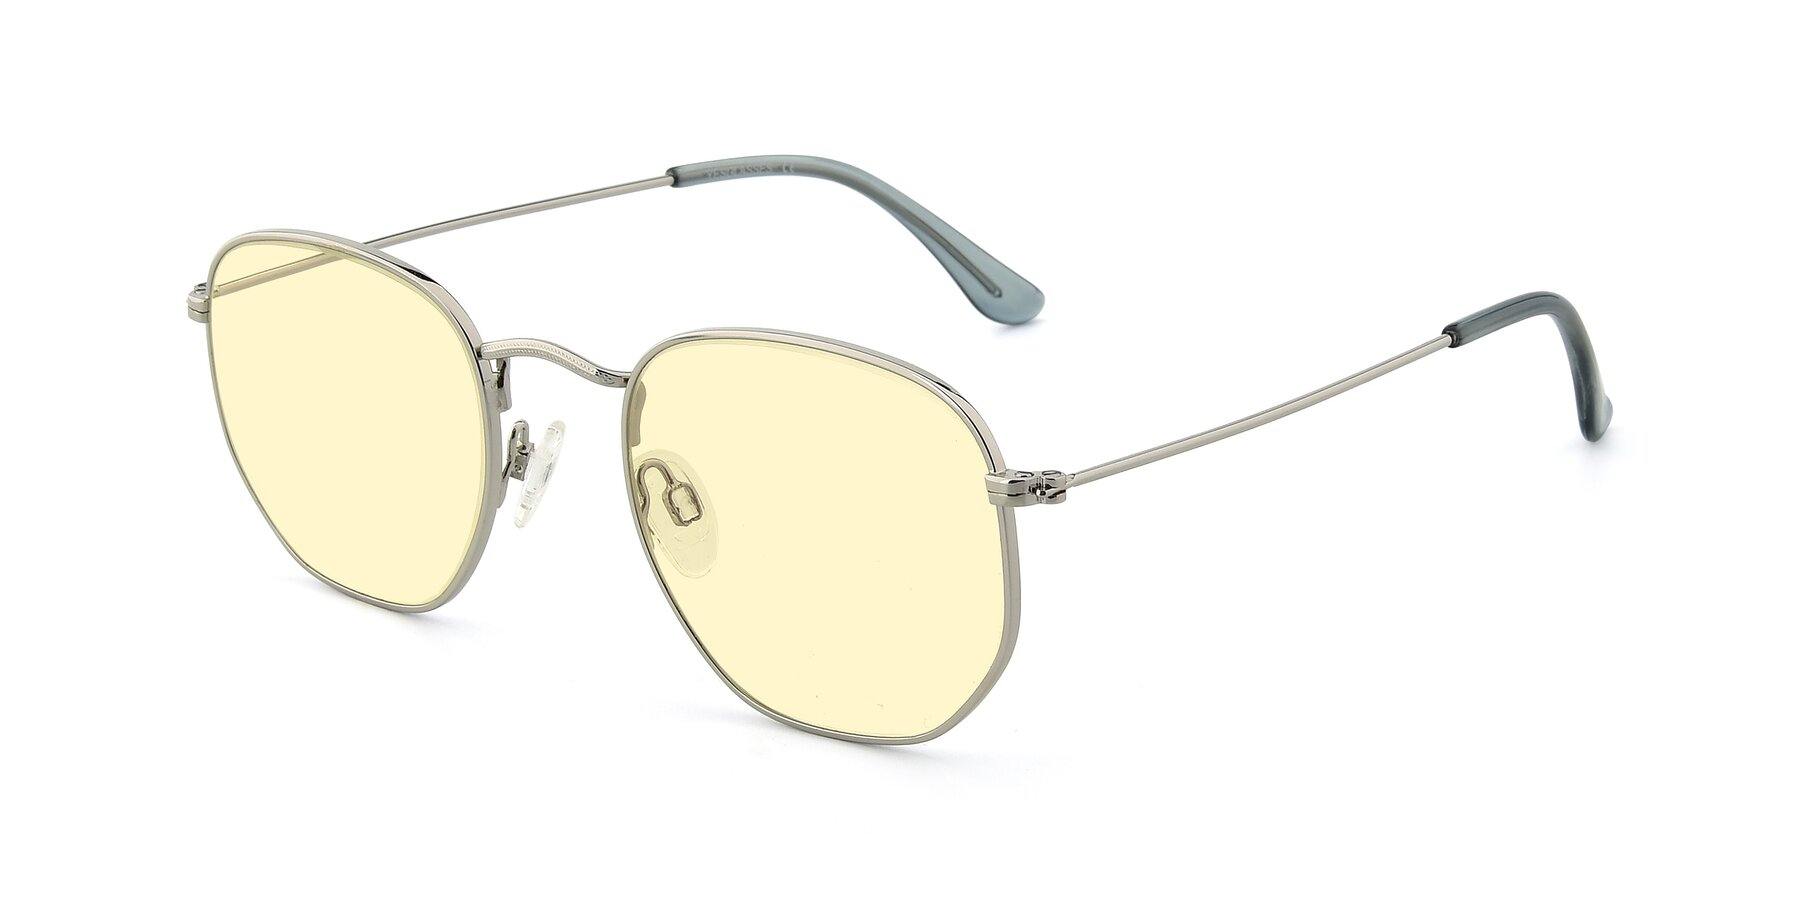 Angle of SSR1943 in Silver with Light Yellow Tinted Lenses